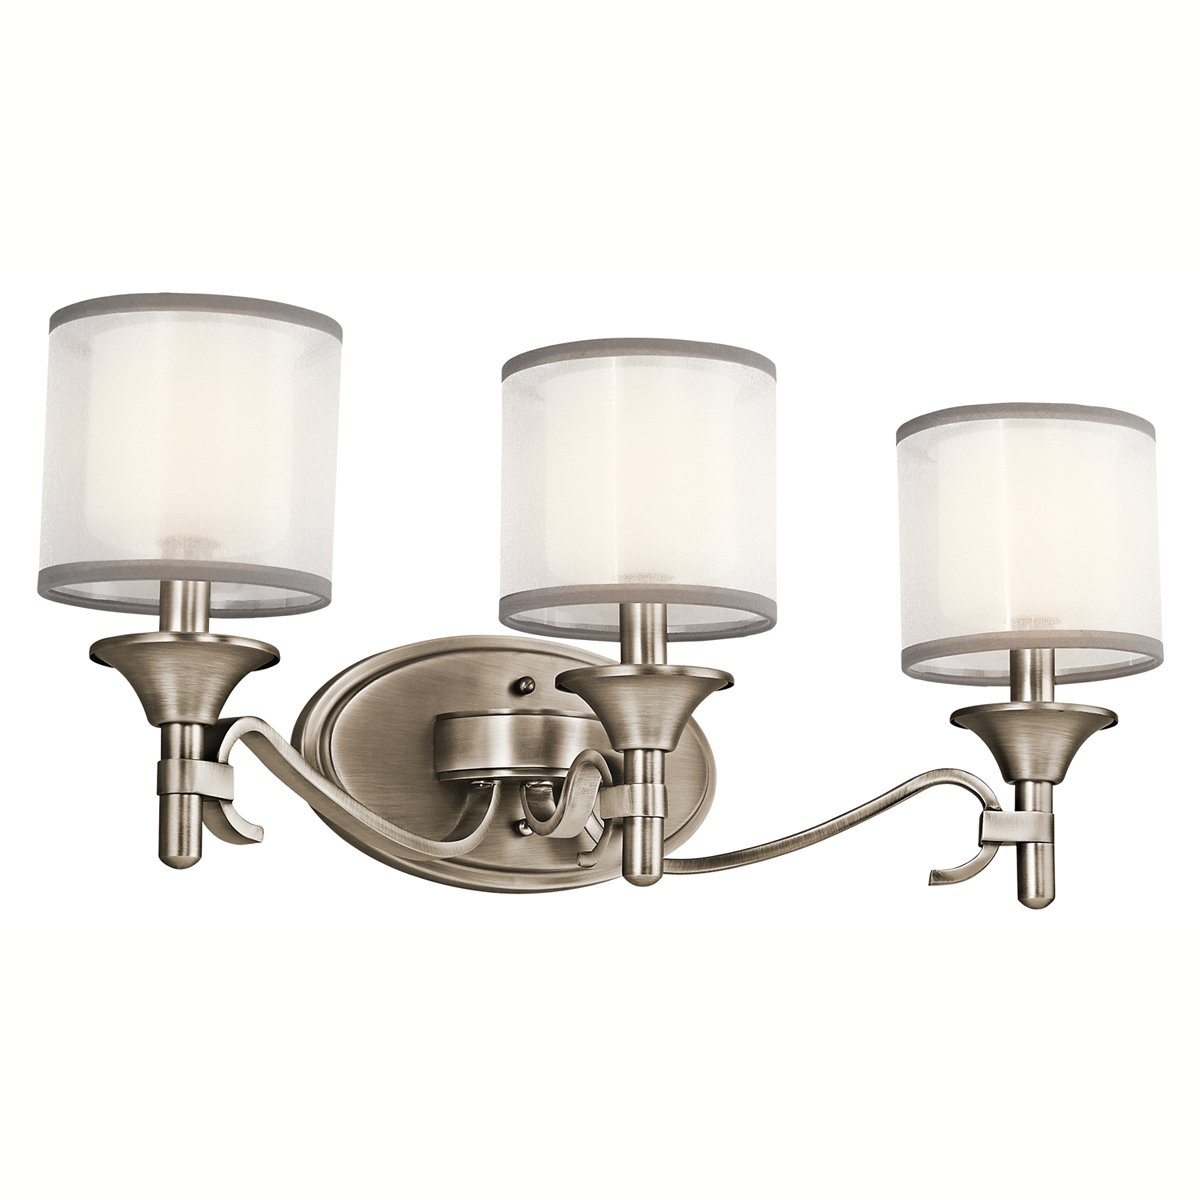 Kichler 45283miz three light bath vanity lighting fixtures kichler 45283miz three light bath vanity lighting fixtures amazon aloadofball Images